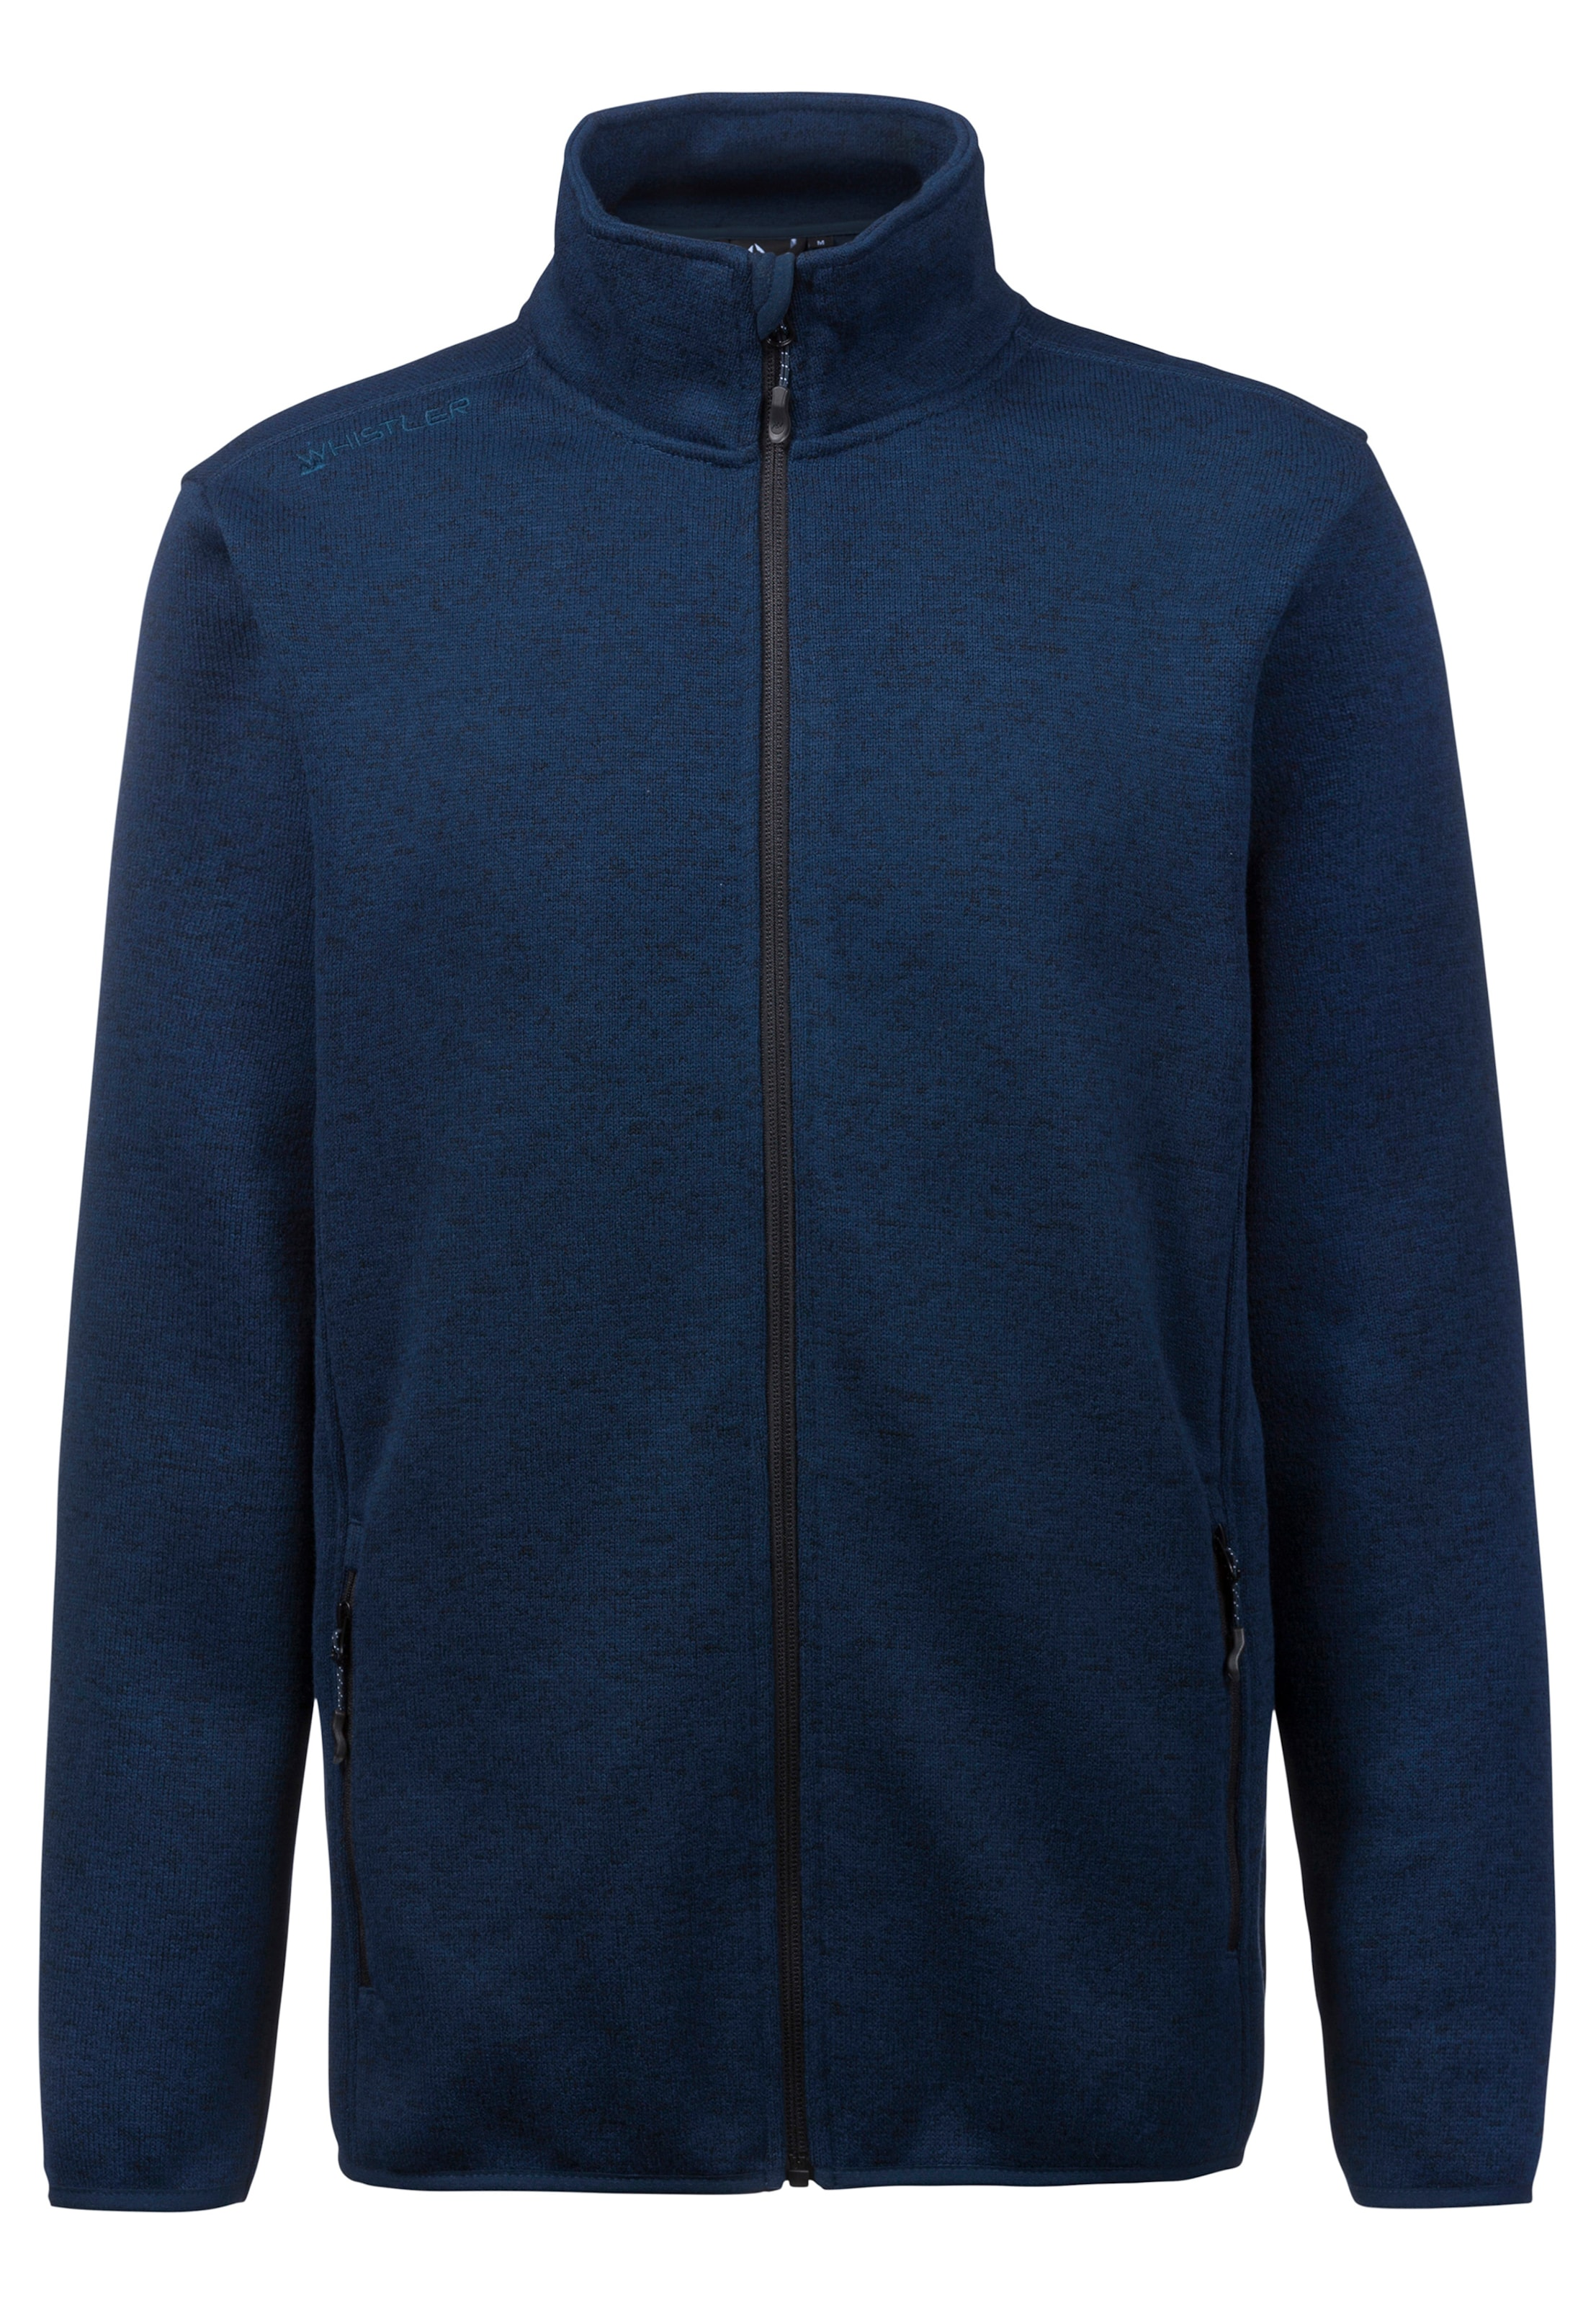 In Fleecejacke Whistler Navy 'pareman' Fleecejacke Whistler QrxhCtsdB